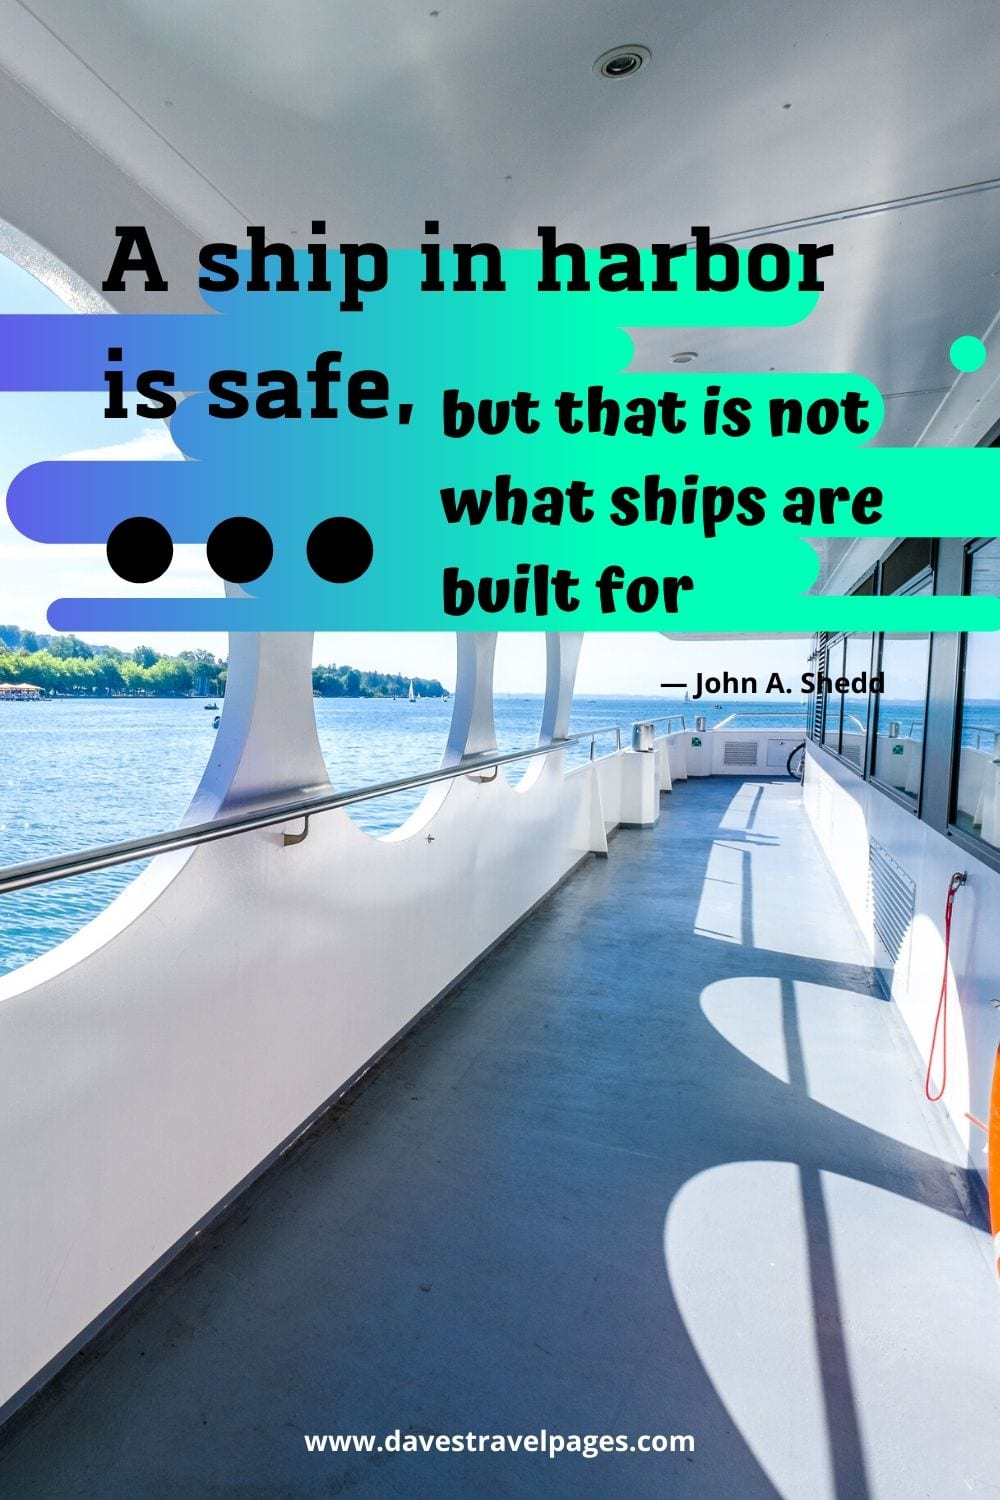 """Inspiring travel words: """"A ship in harbor is safe, but that is not what ships are built for."""" — John A. Shedd"""